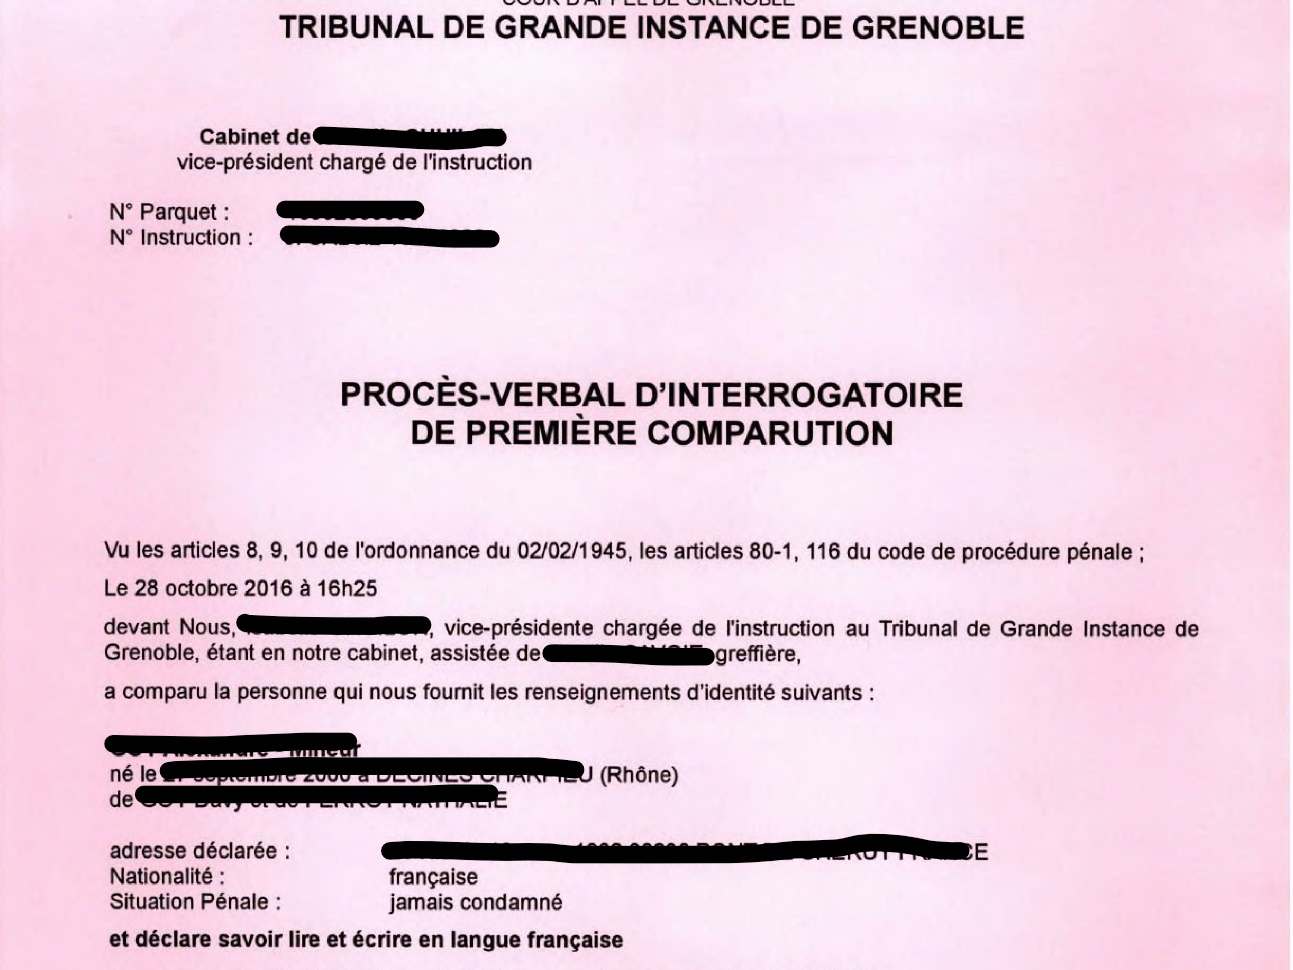 La mise en examen d'un suspect par le juge d'instruction